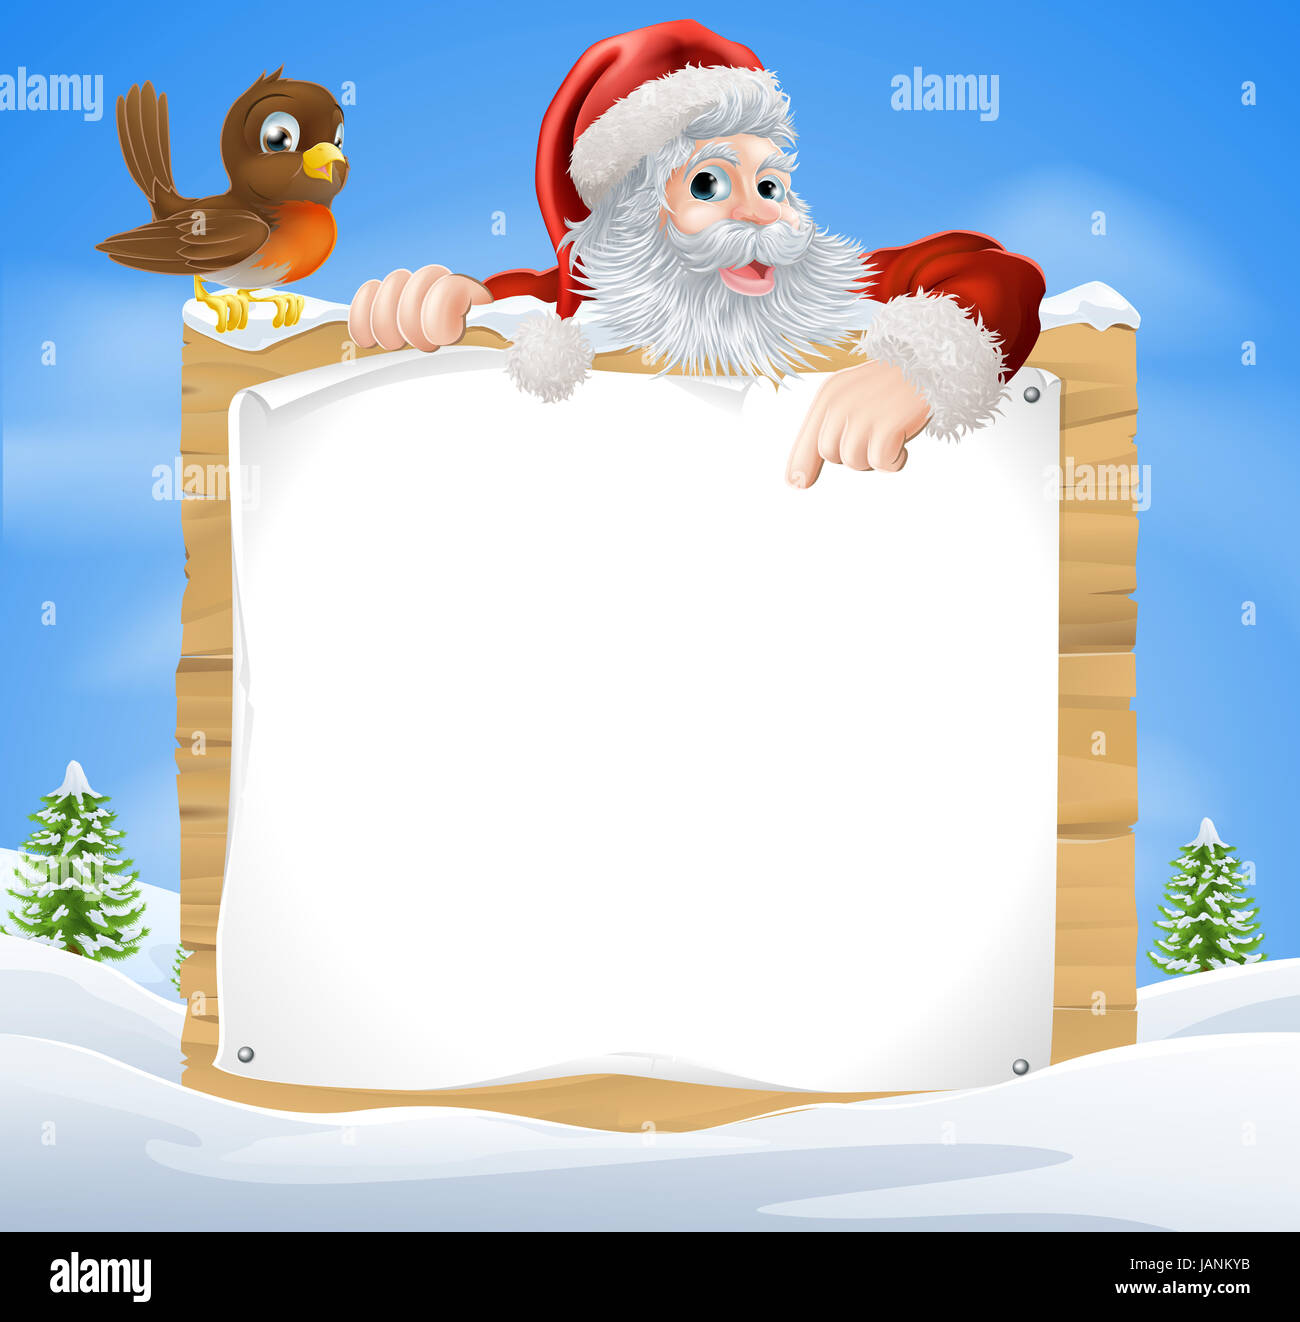 A Christmas Snow.A Christmas Snow Scene With Santa Claus And A Cute Cartoon